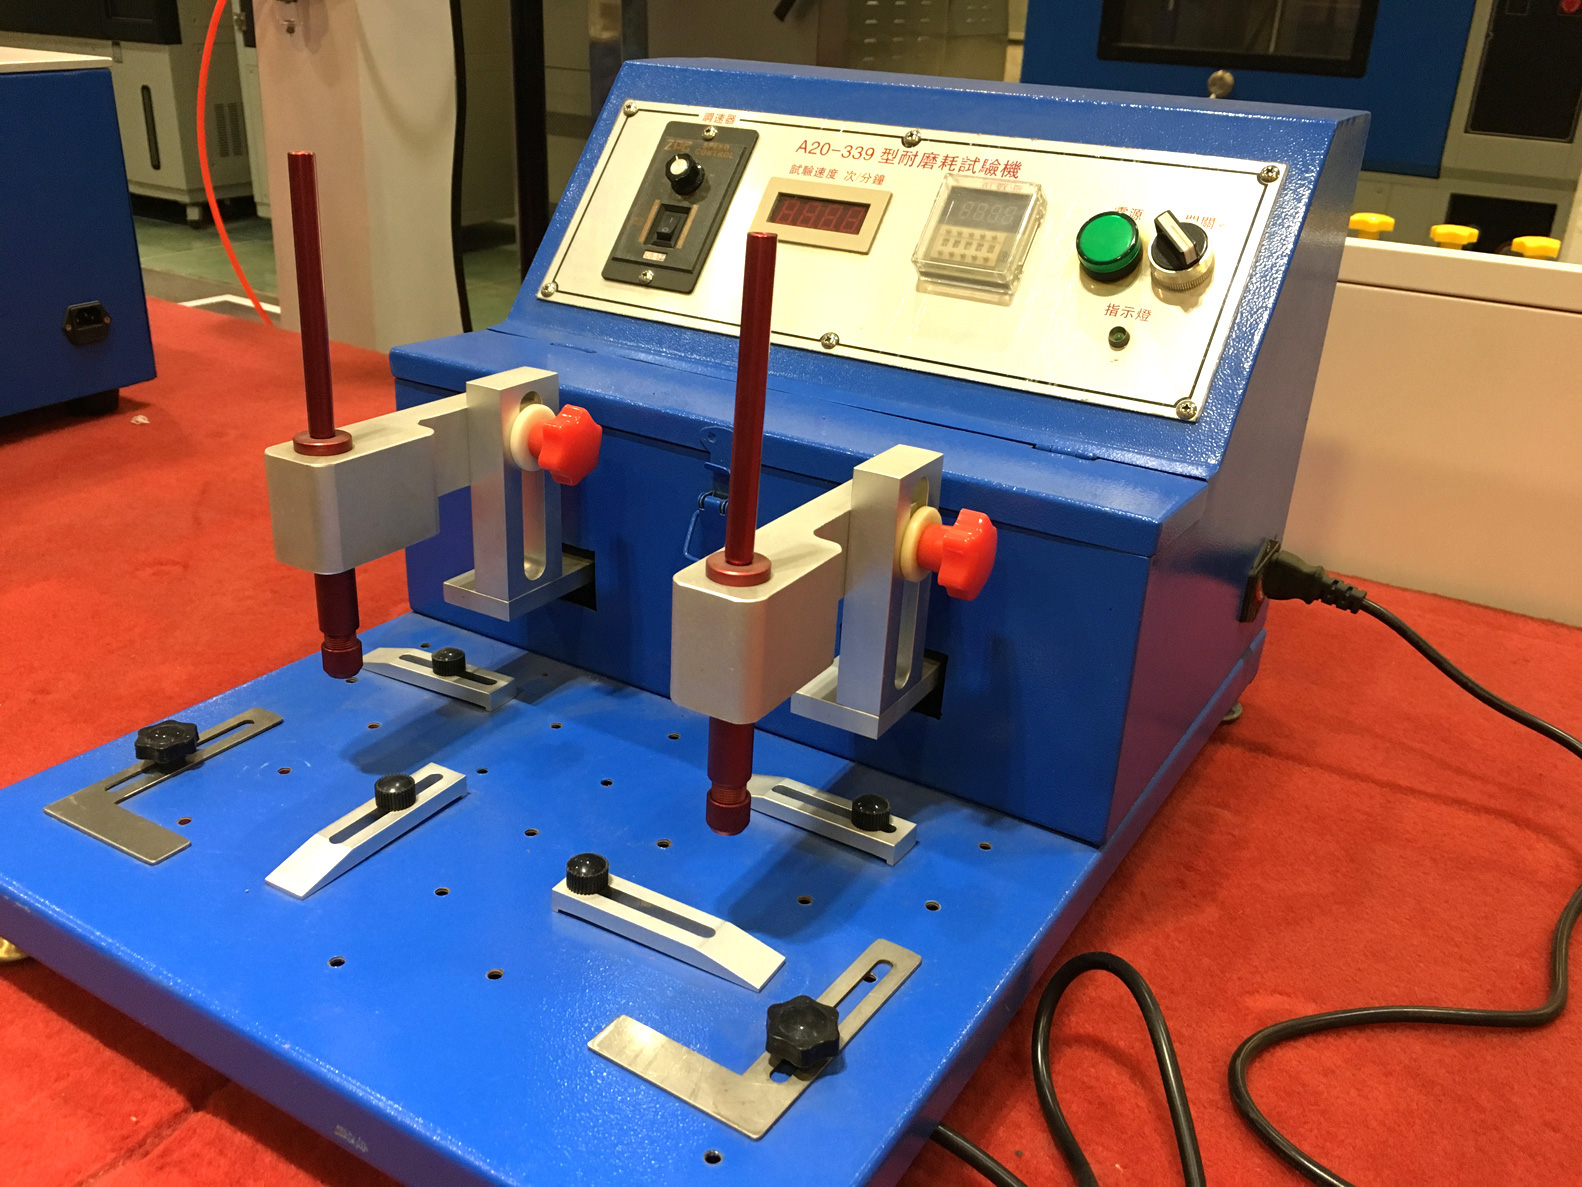 abrasion tester machine for rubber wheels and plastics test